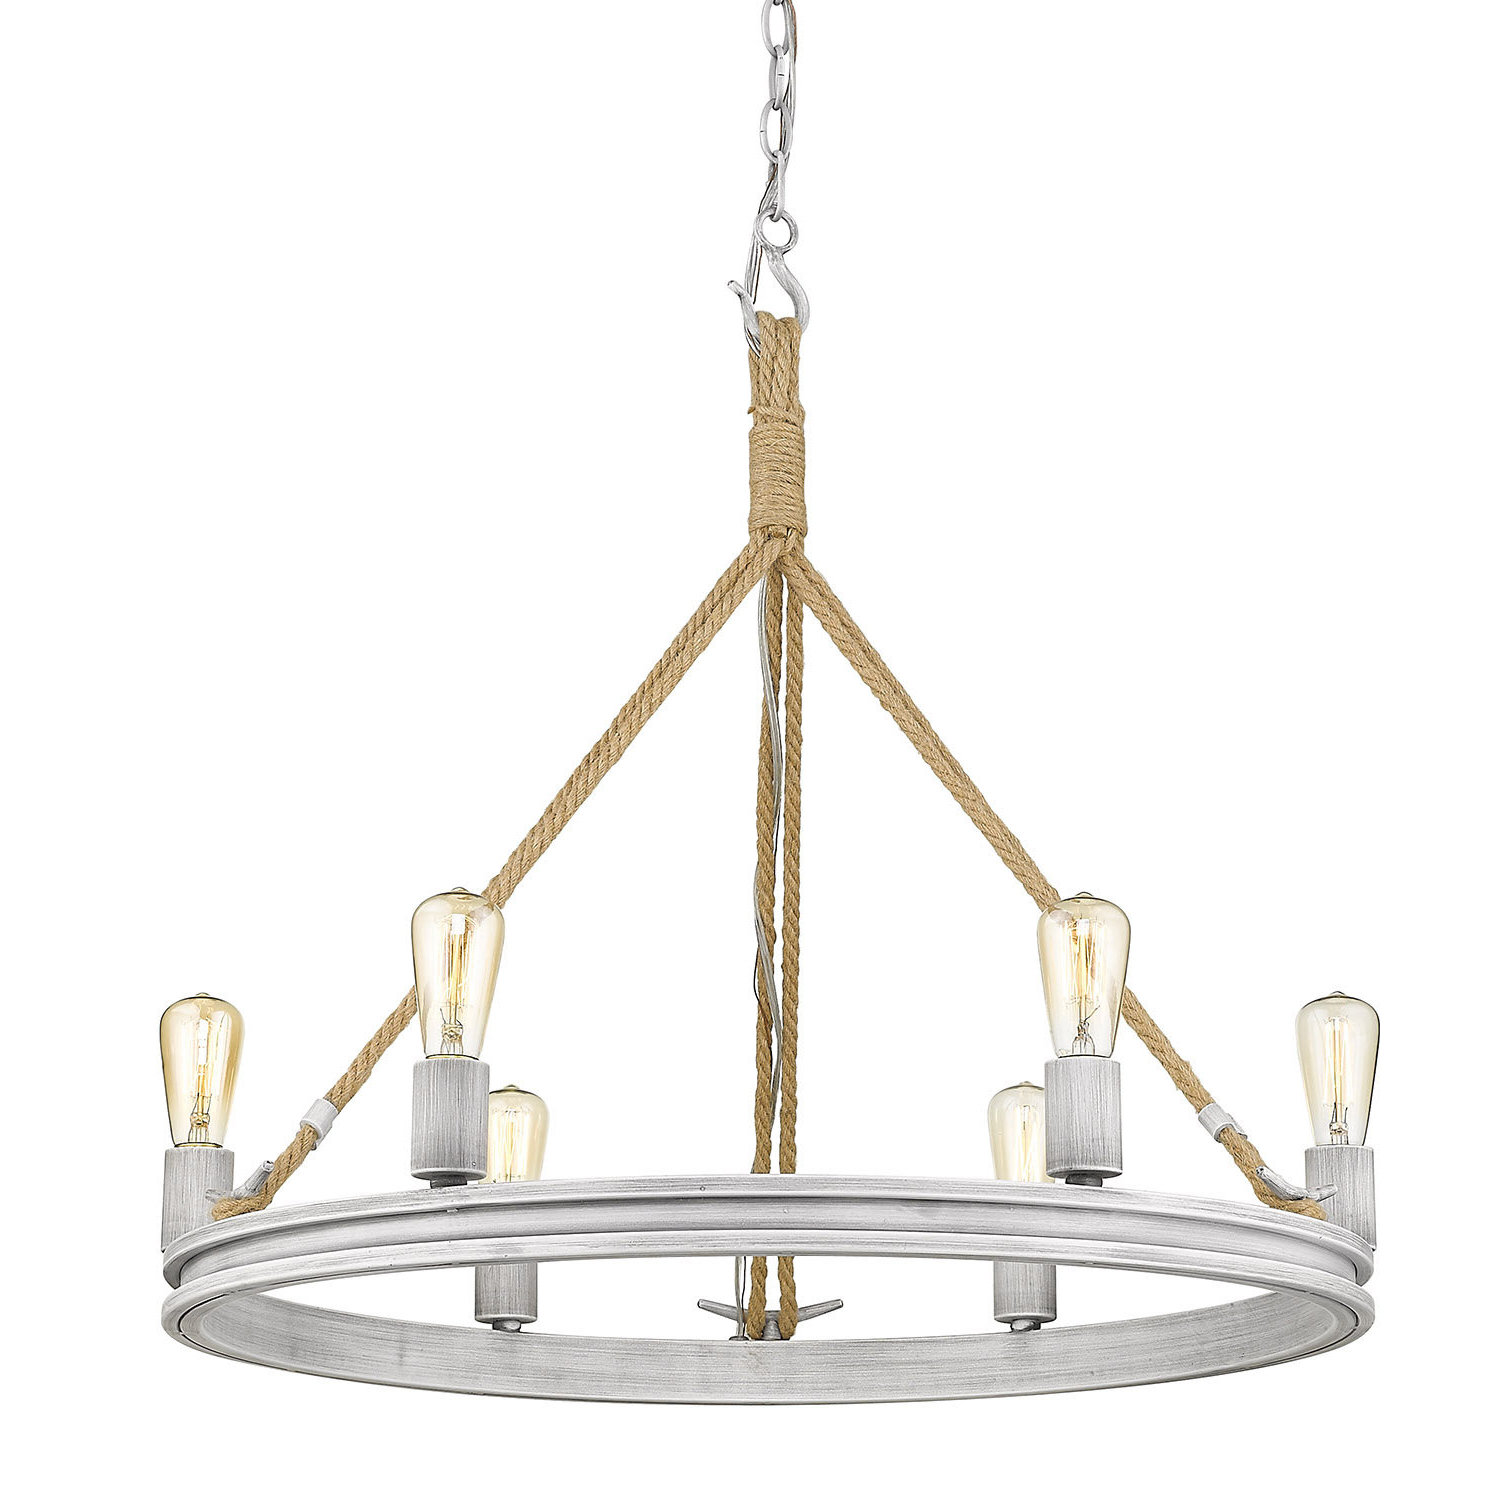 Fashionable Longfellow 6 Light Wagon Wheel Chandelier Pertaining To Janette 5 Light Wagon Wheel Chandeliers (Gallery 18 of 20)